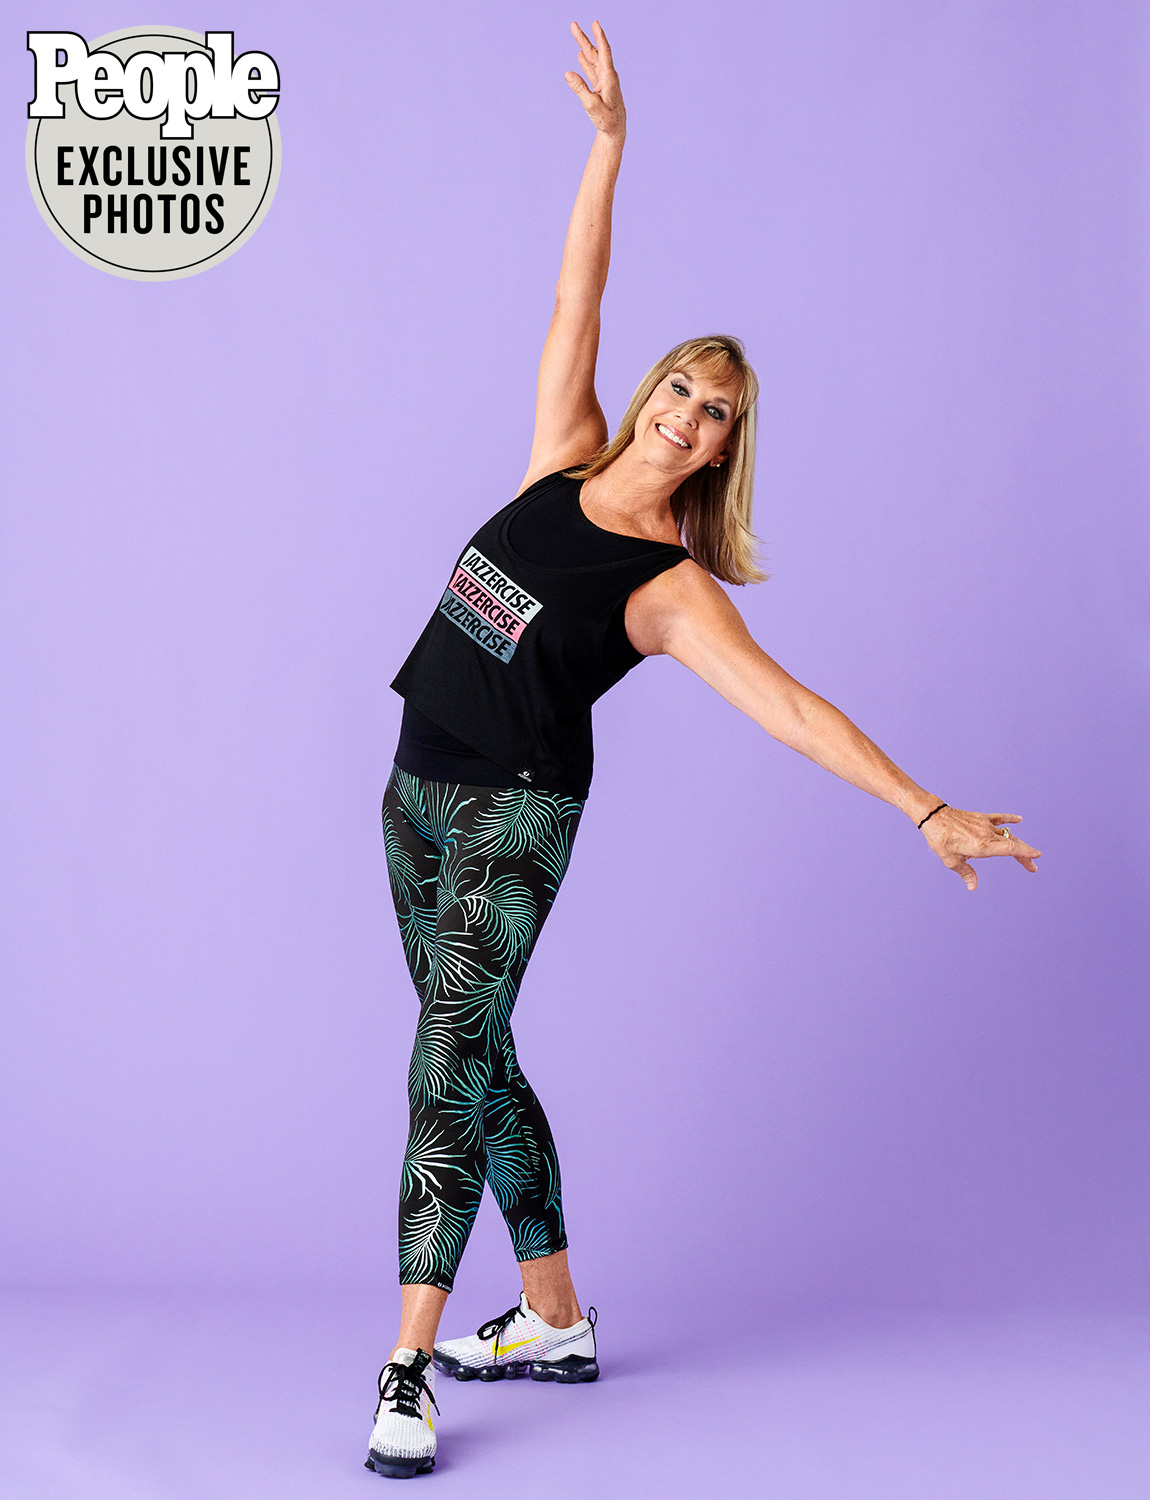 Judi Sheppard Missett, Shanna and Skyla Nelson Jazzercise family shot in their studio in Carlsbad, CA on 10/23/2020